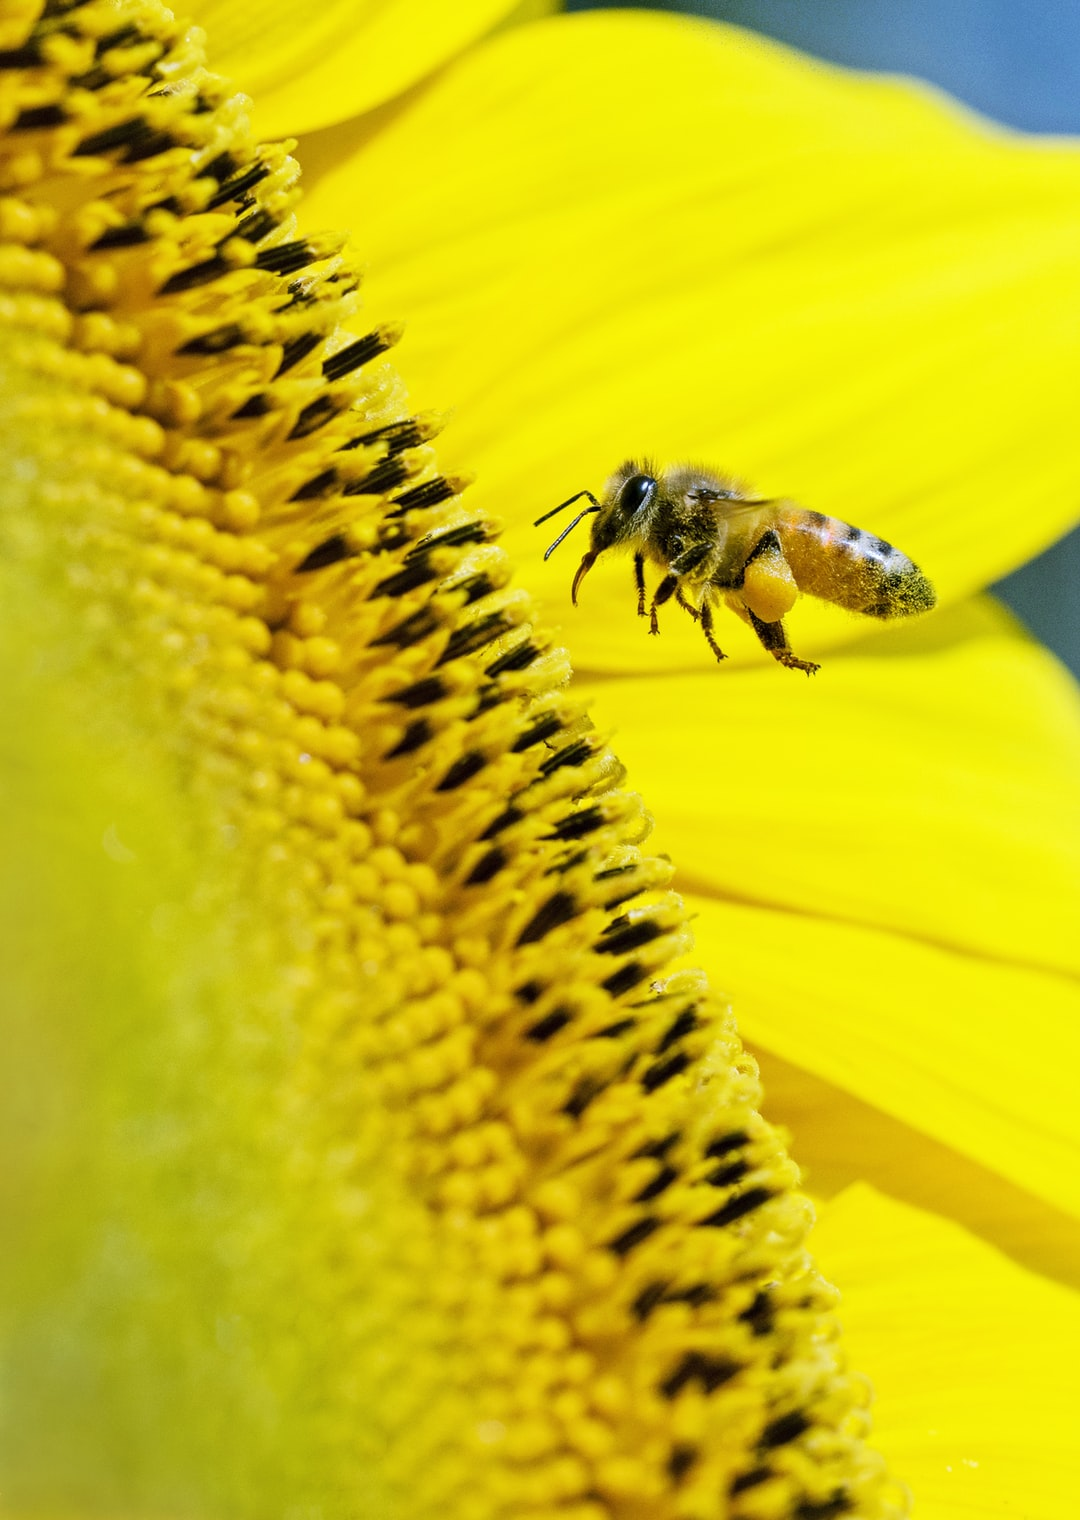 This bee visiting a sunflower can't wait to get at the sweet nectar. I was lucky to get this photo where you can clearly see the bee's tongue.